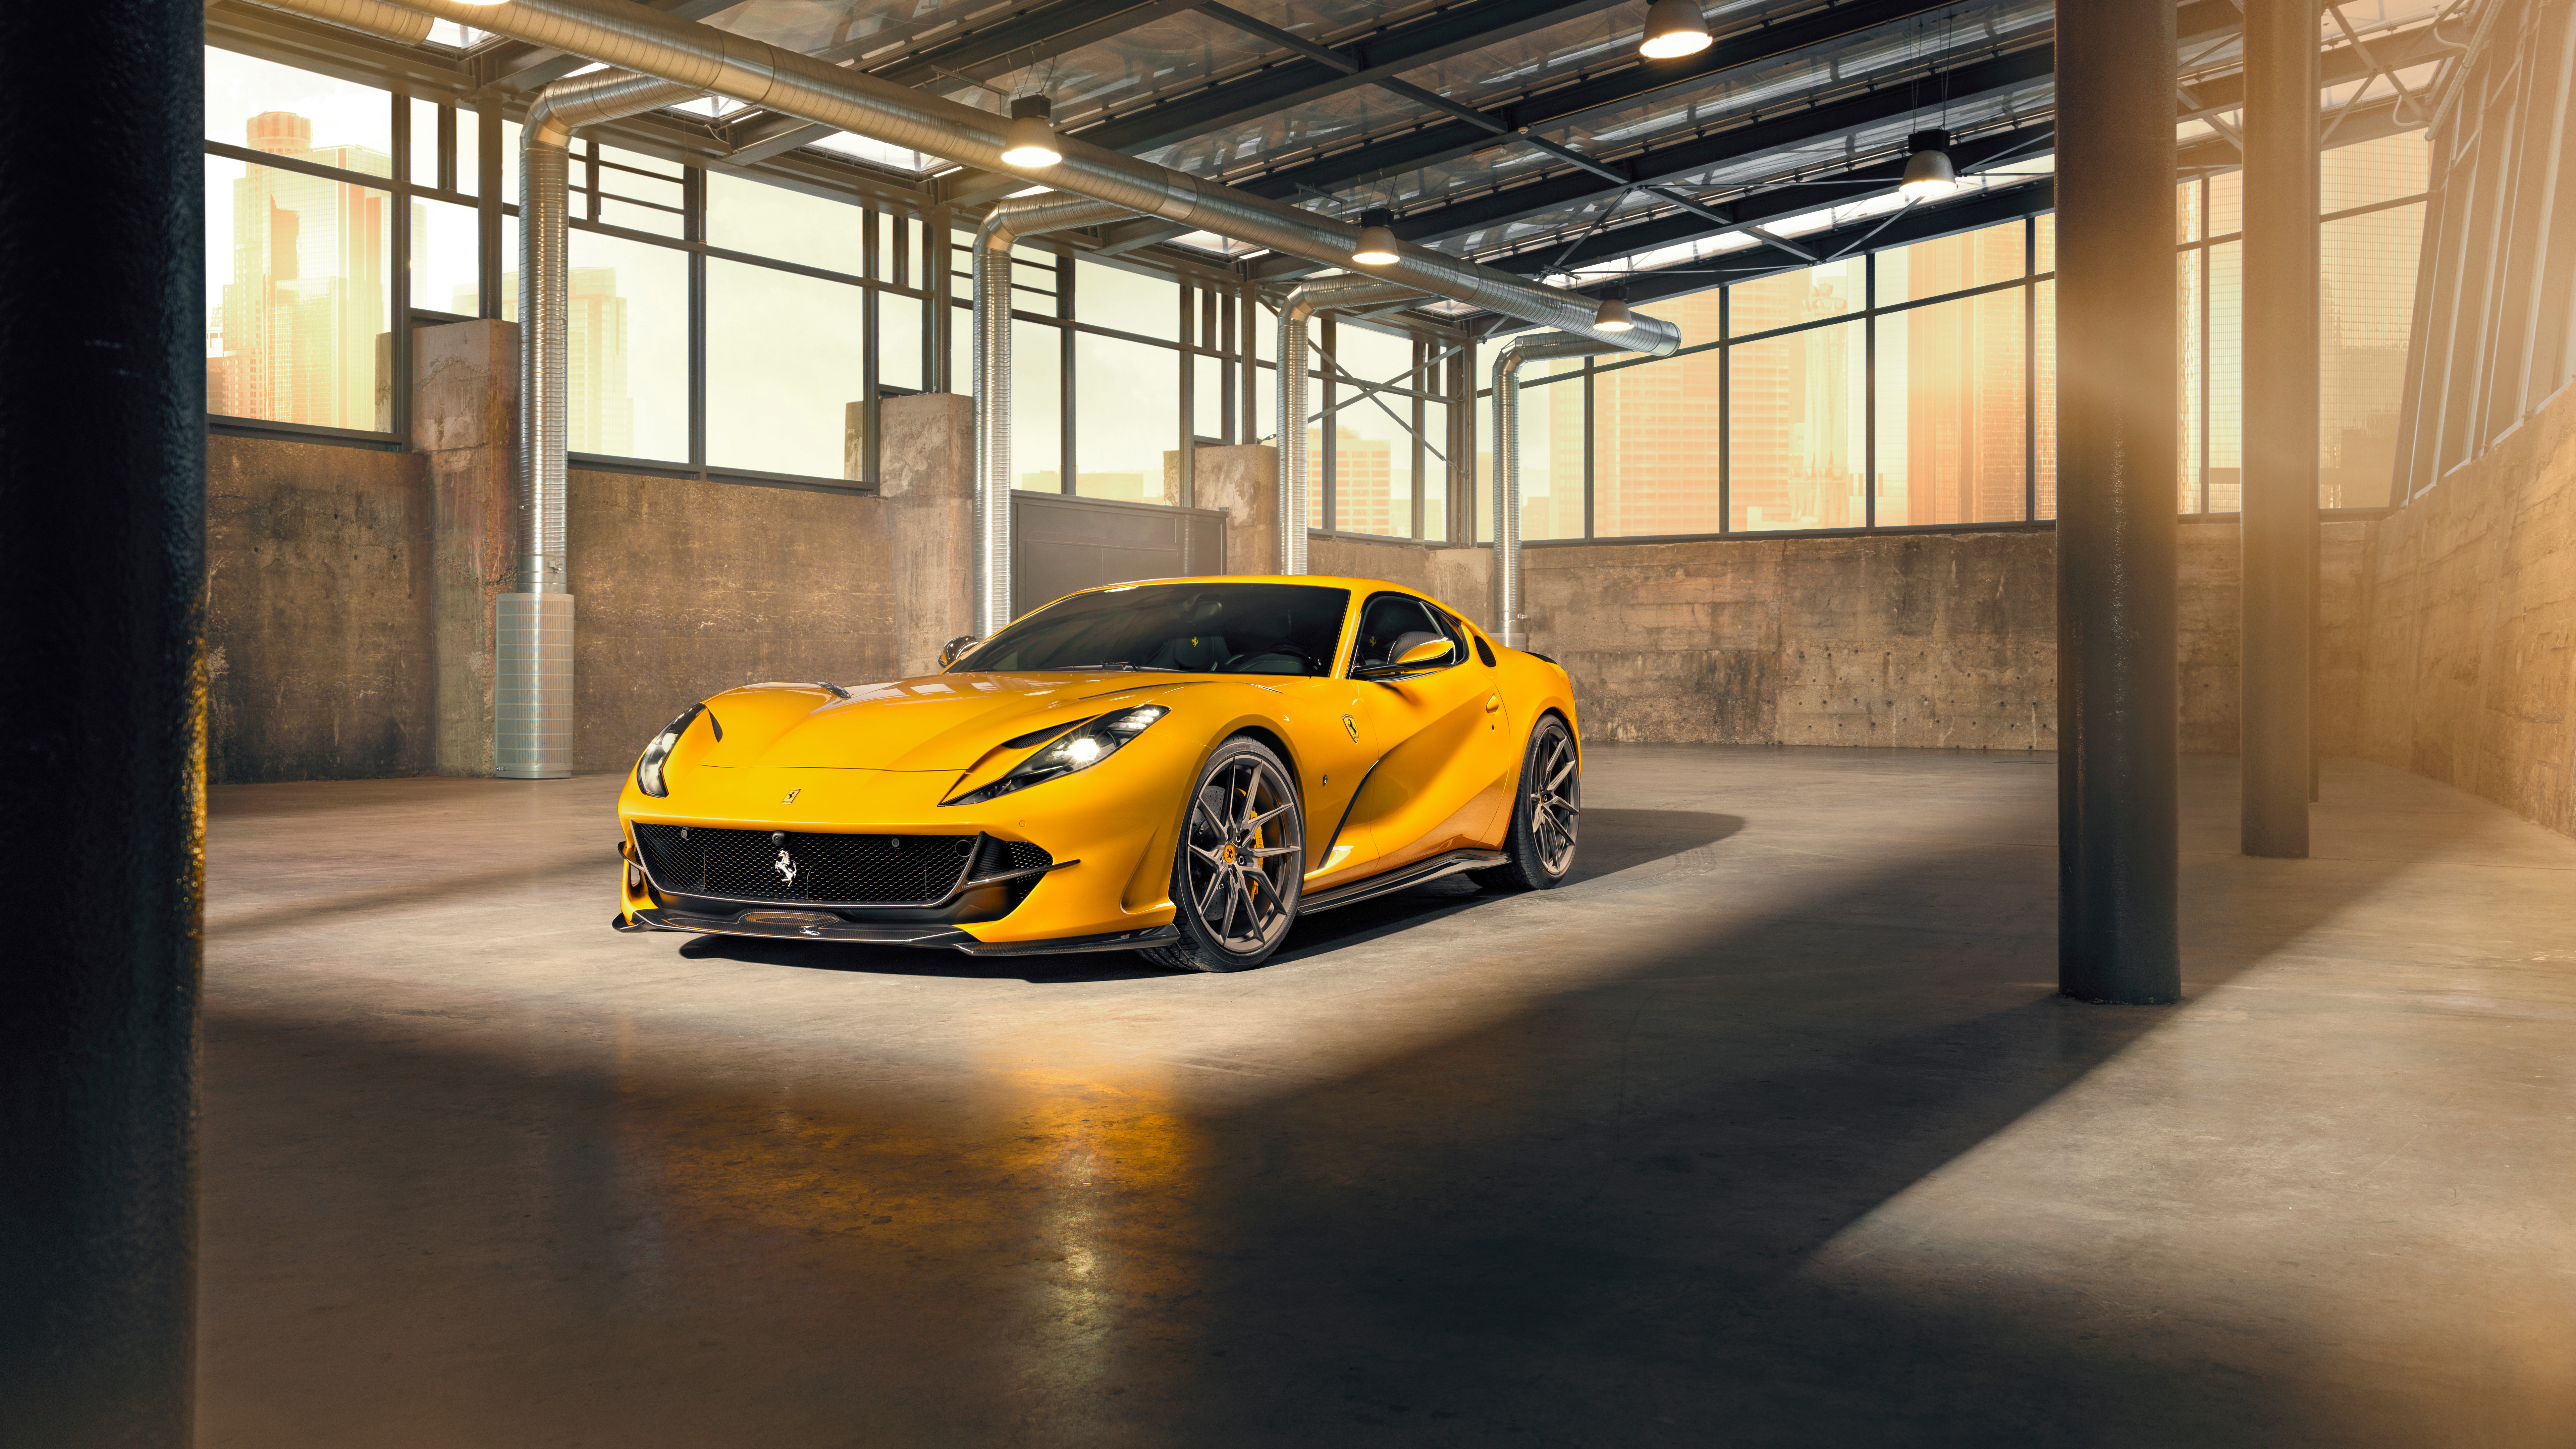 Novitec ferrari 812 superfast 2019 4k 8k wallpaper hd - Wallpaper hd 4k car ...